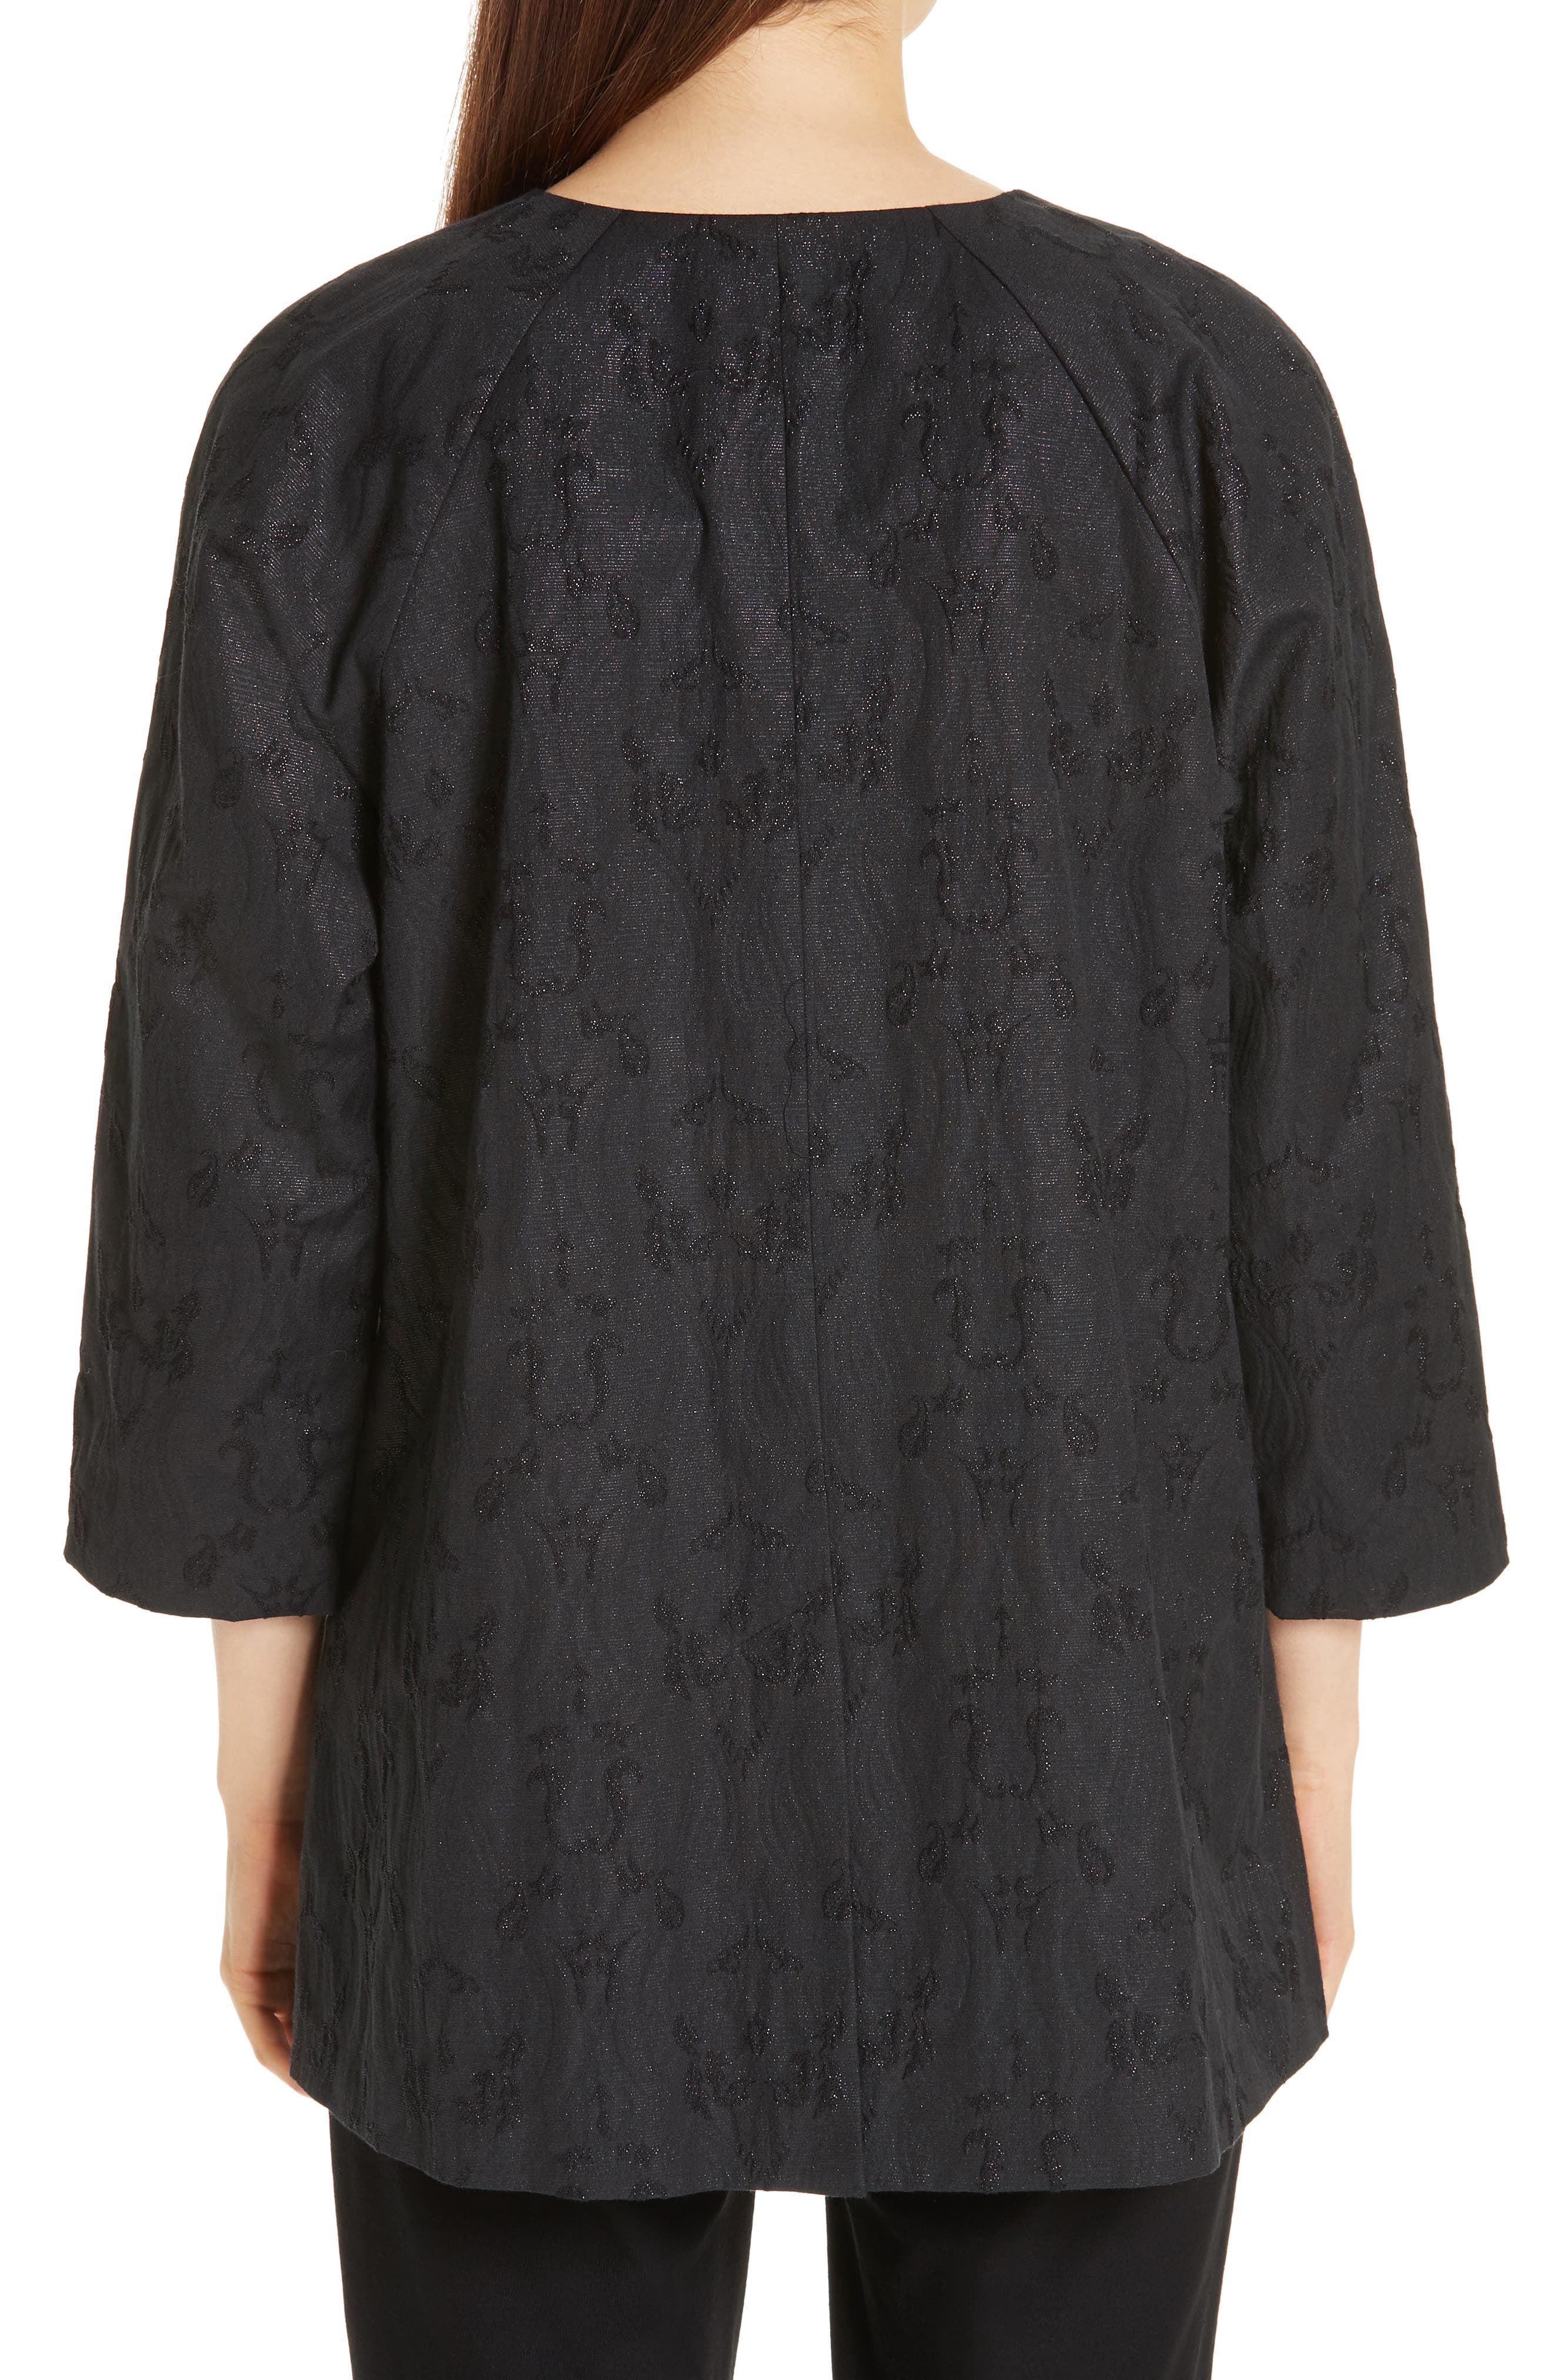 EILEEN FISHER, Metallic Jacquard Collarless Jacket, Alternate thumbnail 2, color, BLACK